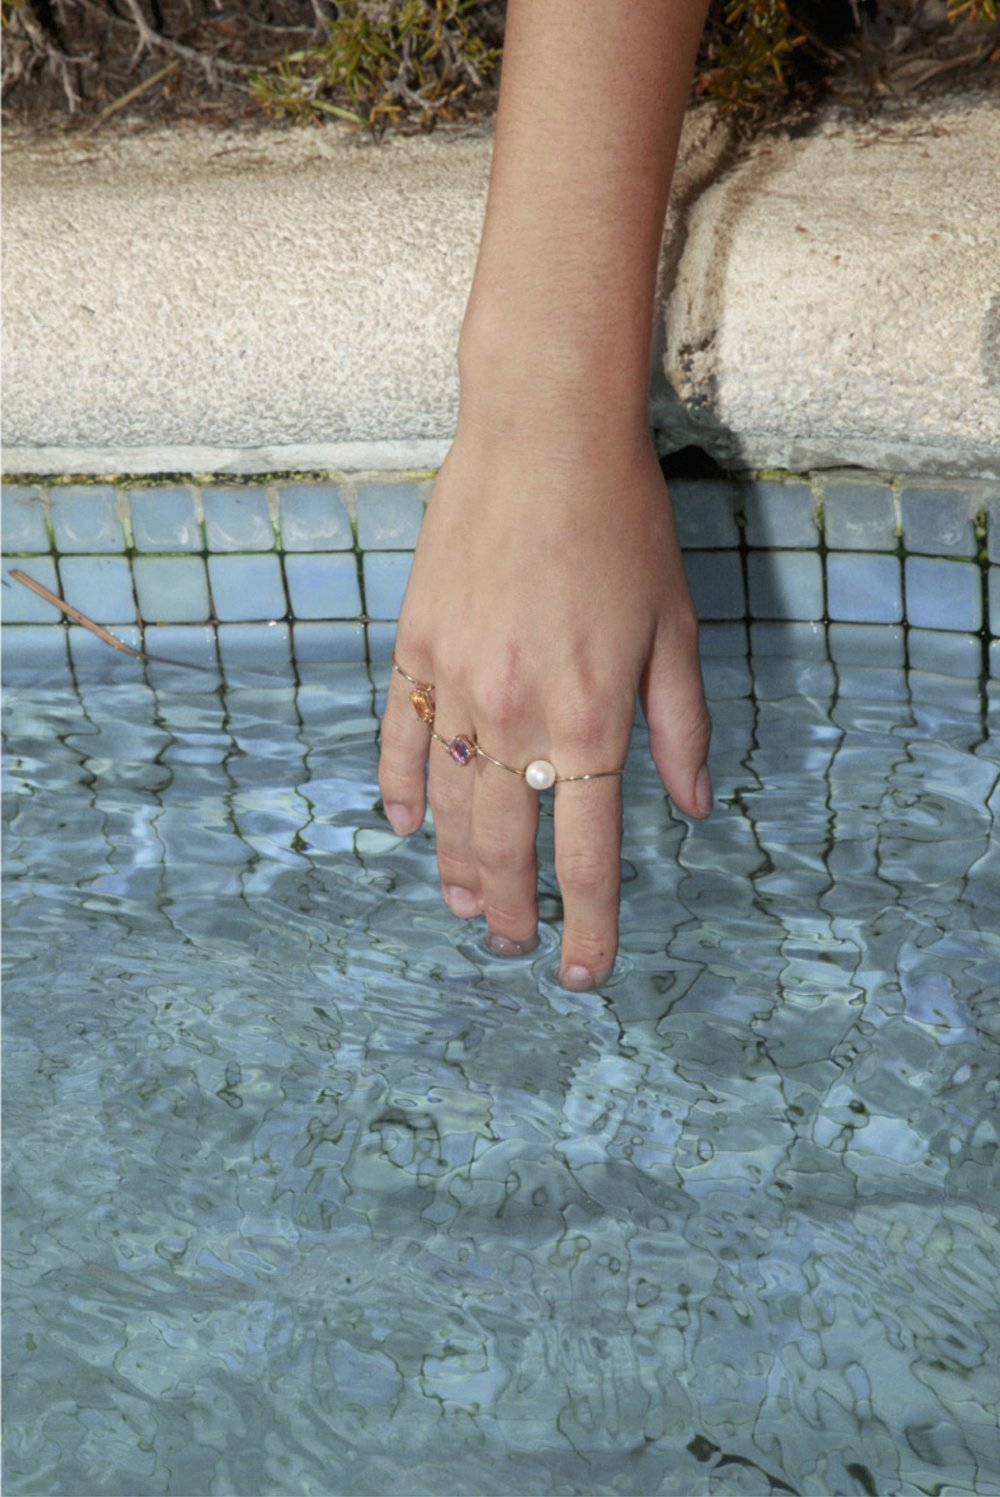 saralasry_SUMMER_lookbook_WEB_160913 copia.jpg